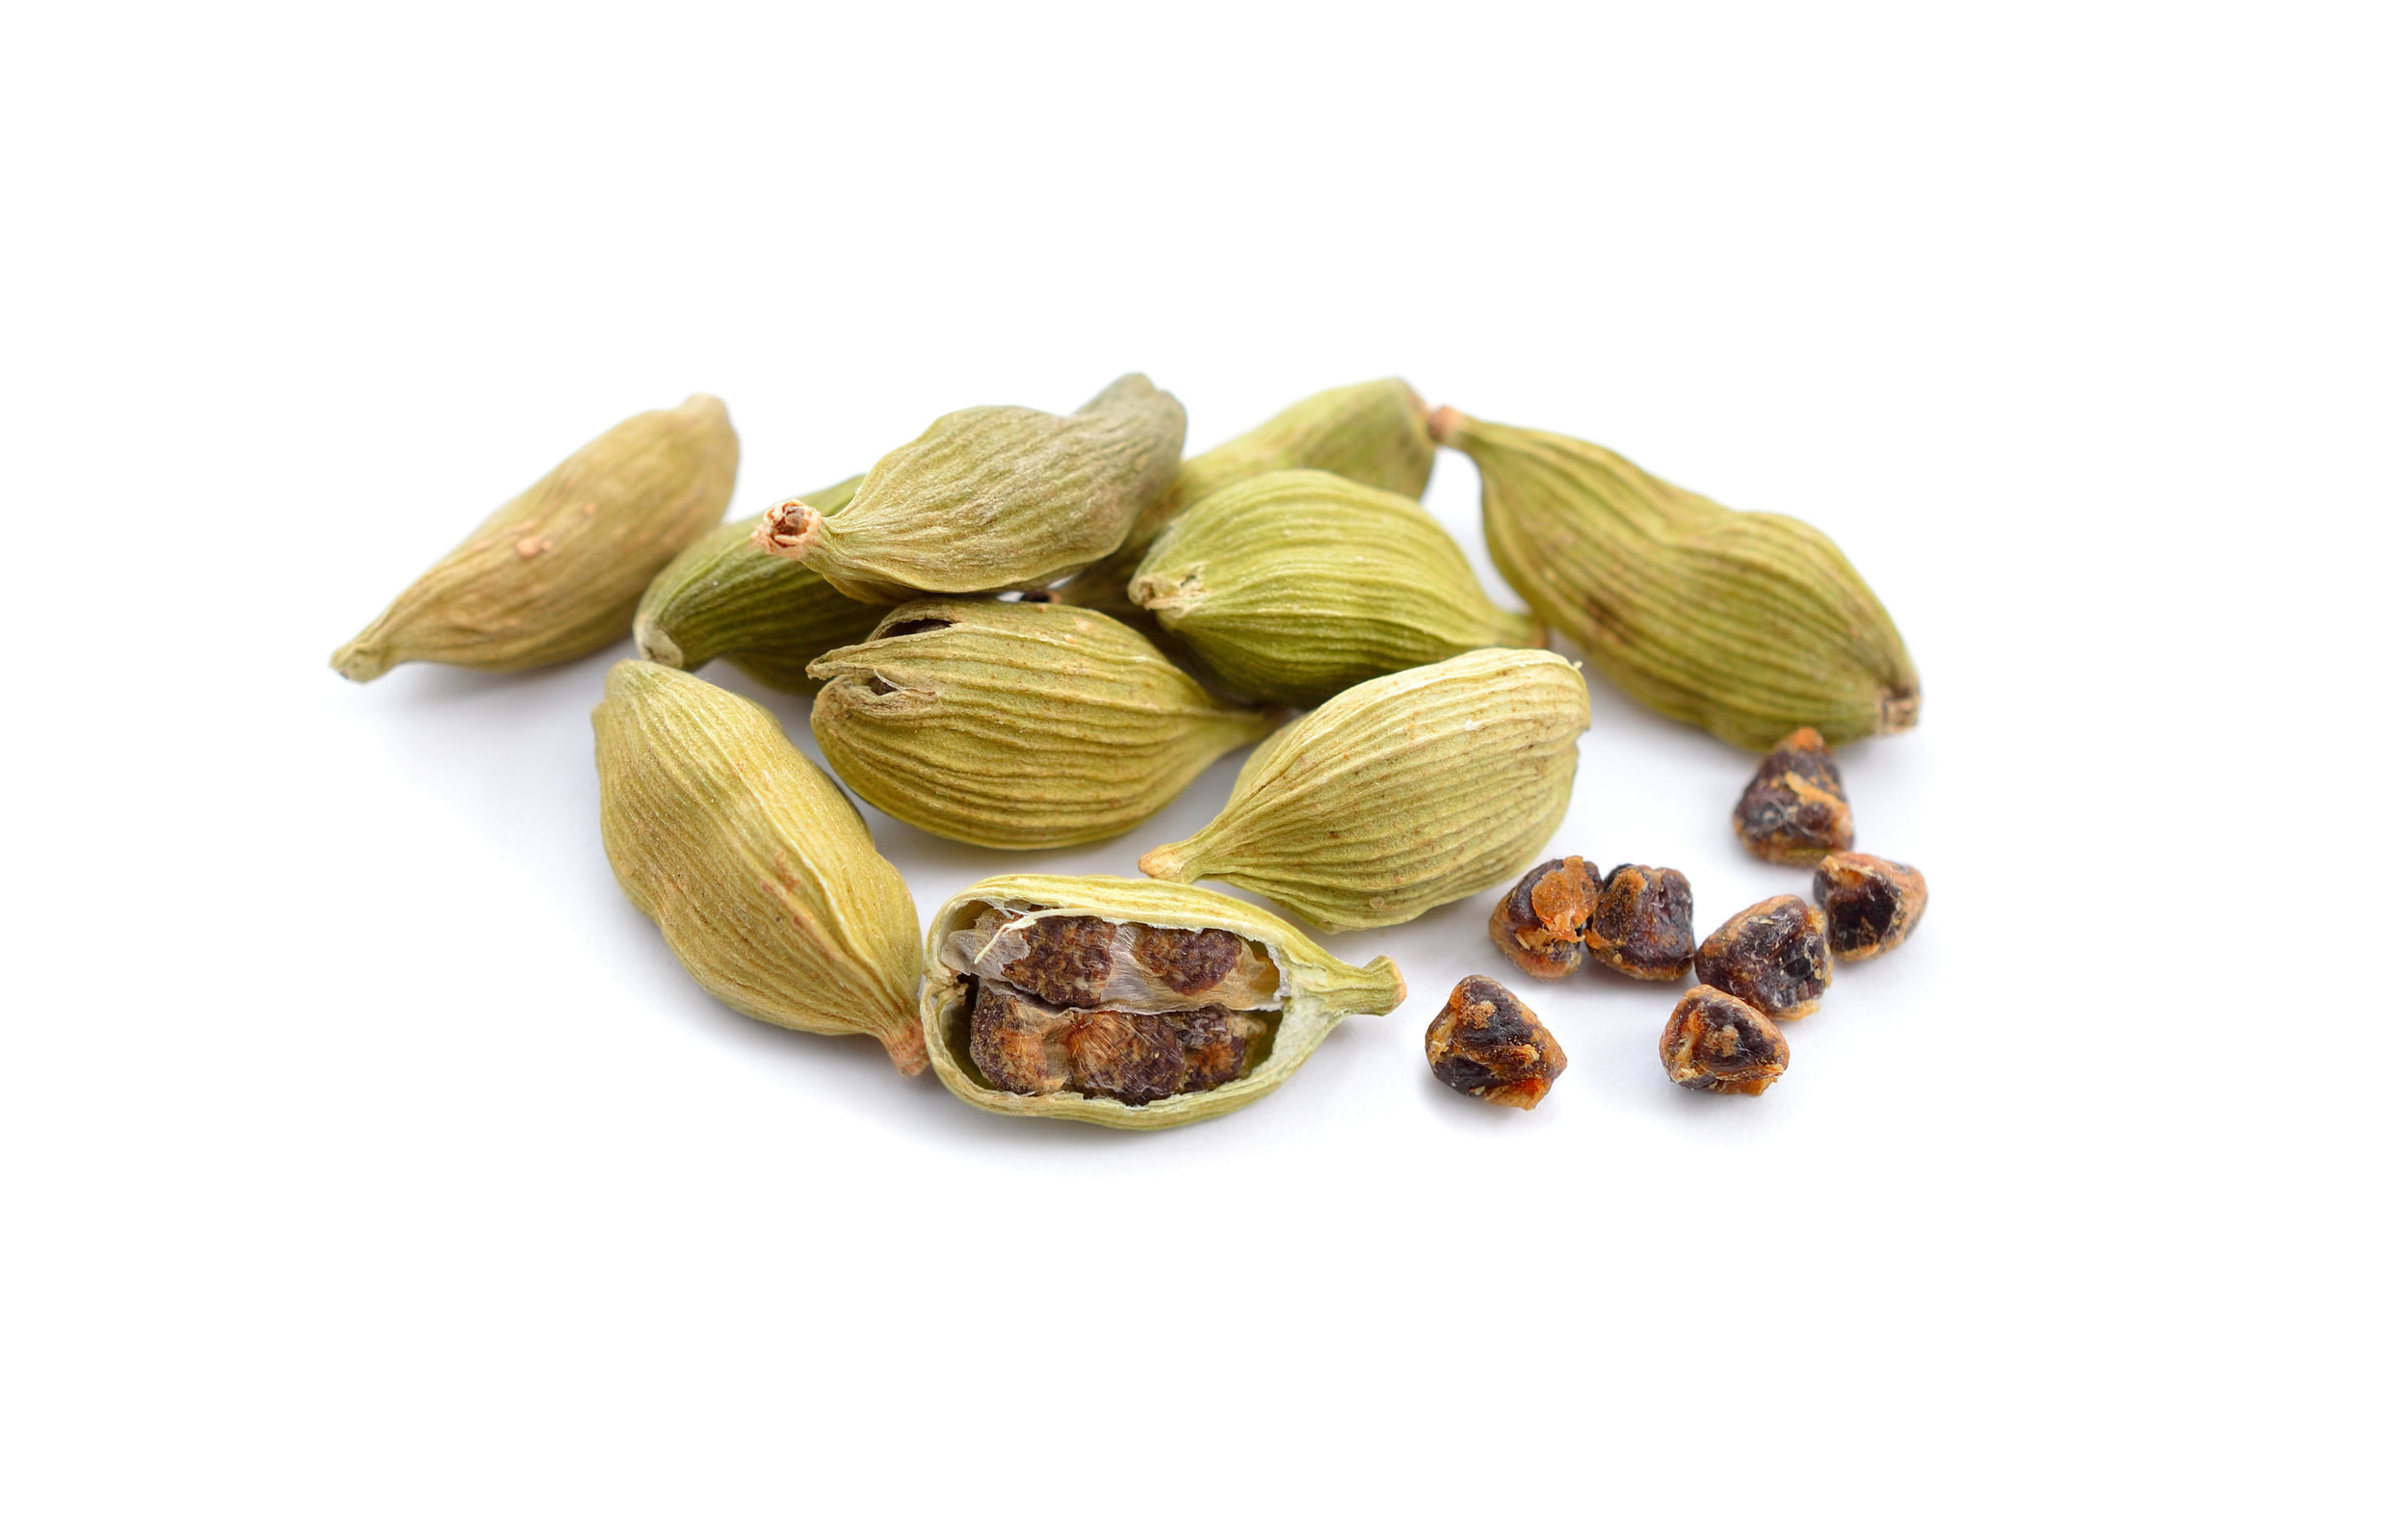 Cardamom Pods - Our coriander is bred specifically for its seeds. After steeping it overnight you can taste the woody notes of thyme and the floral citrus flavour of linalool.